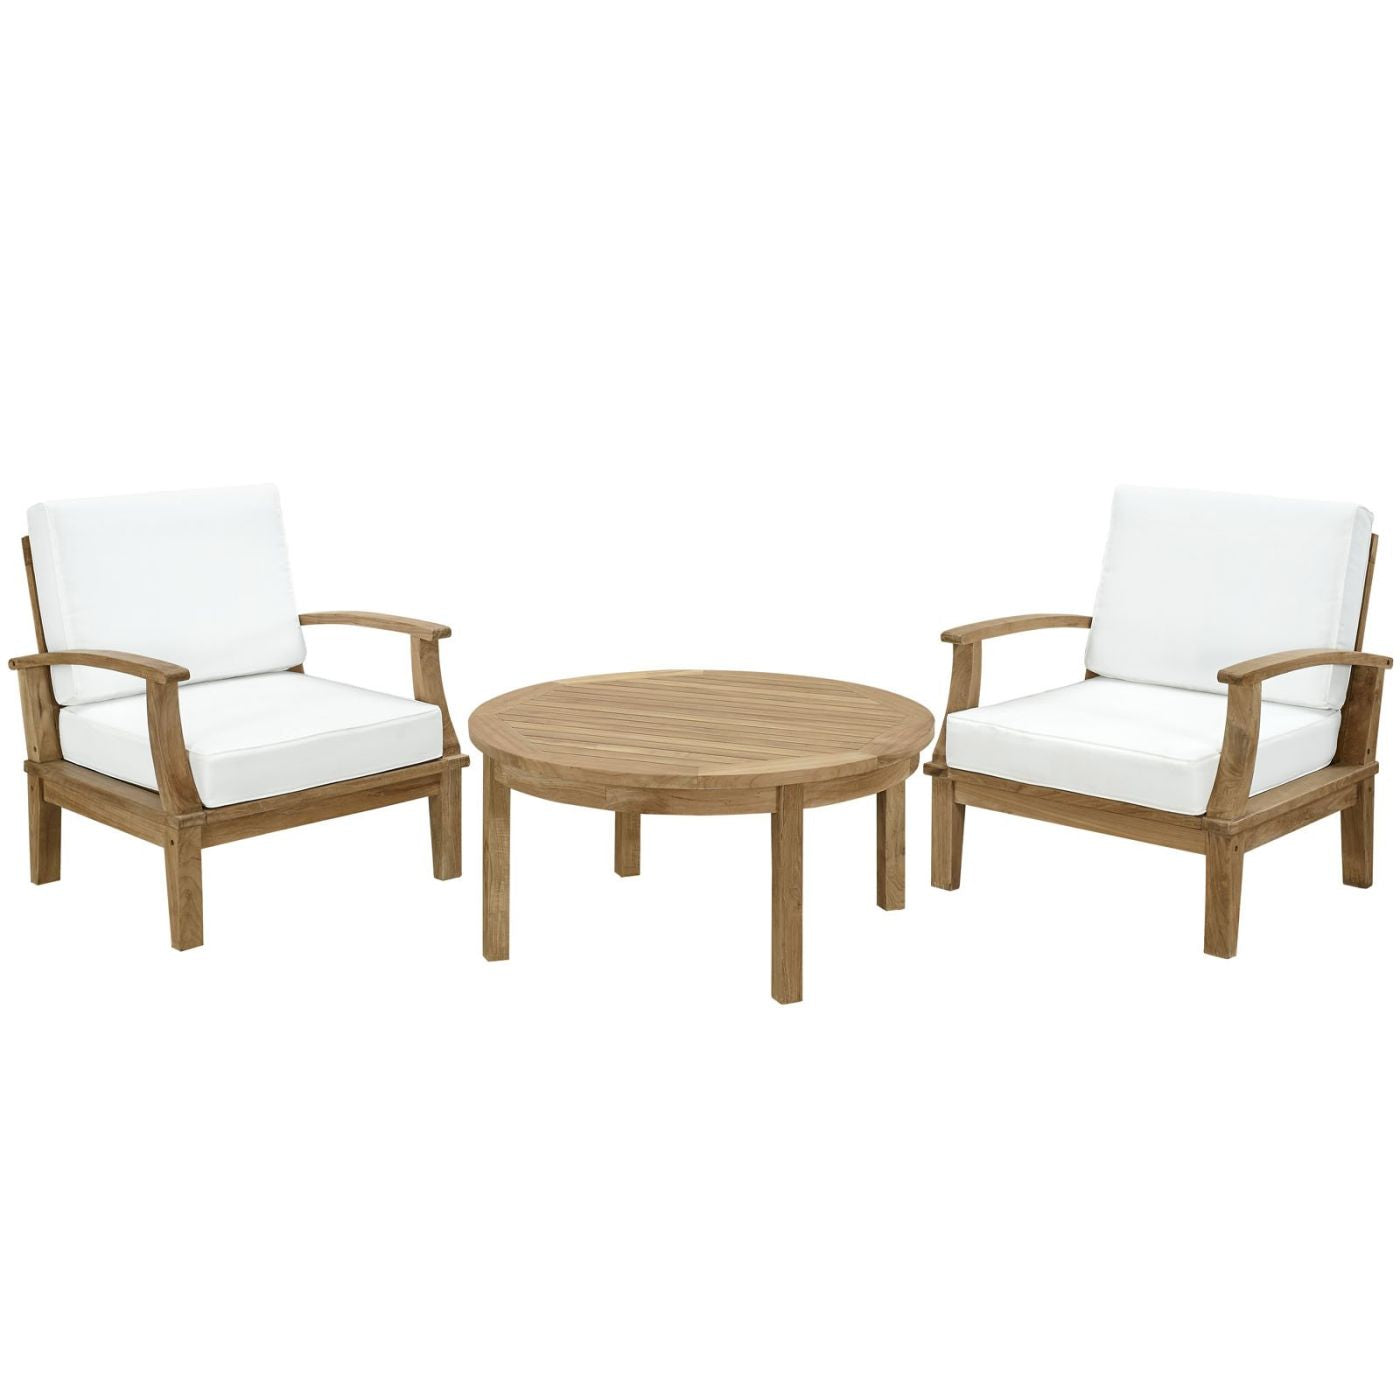 Pleasing Modway Outdoor Patio Sets On Sale Eei 1475 Nat Whi Set Marina 3 Piece Outdoor Patio Teak Sofa Set Only Only 1 096 80 At Contemporary Furniture Download Free Architecture Designs Sospemadebymaigaardcom